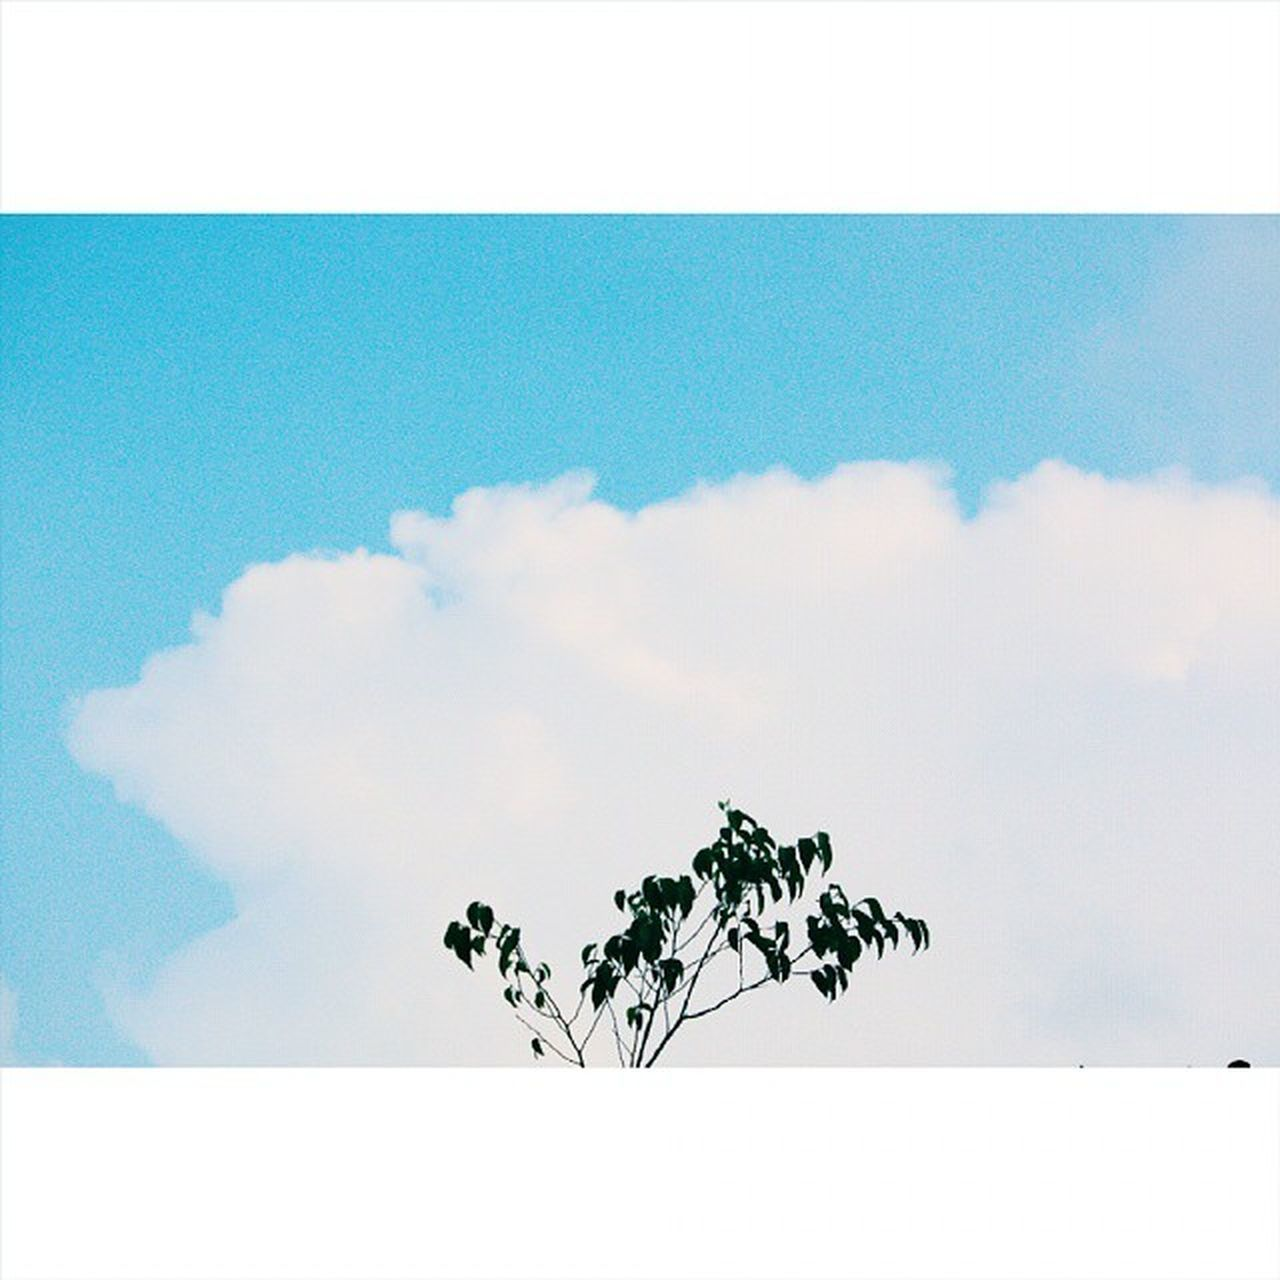 cloud - sky, sky, no people, day, scenics, outdoors, nature, beauty in nature, animal themes